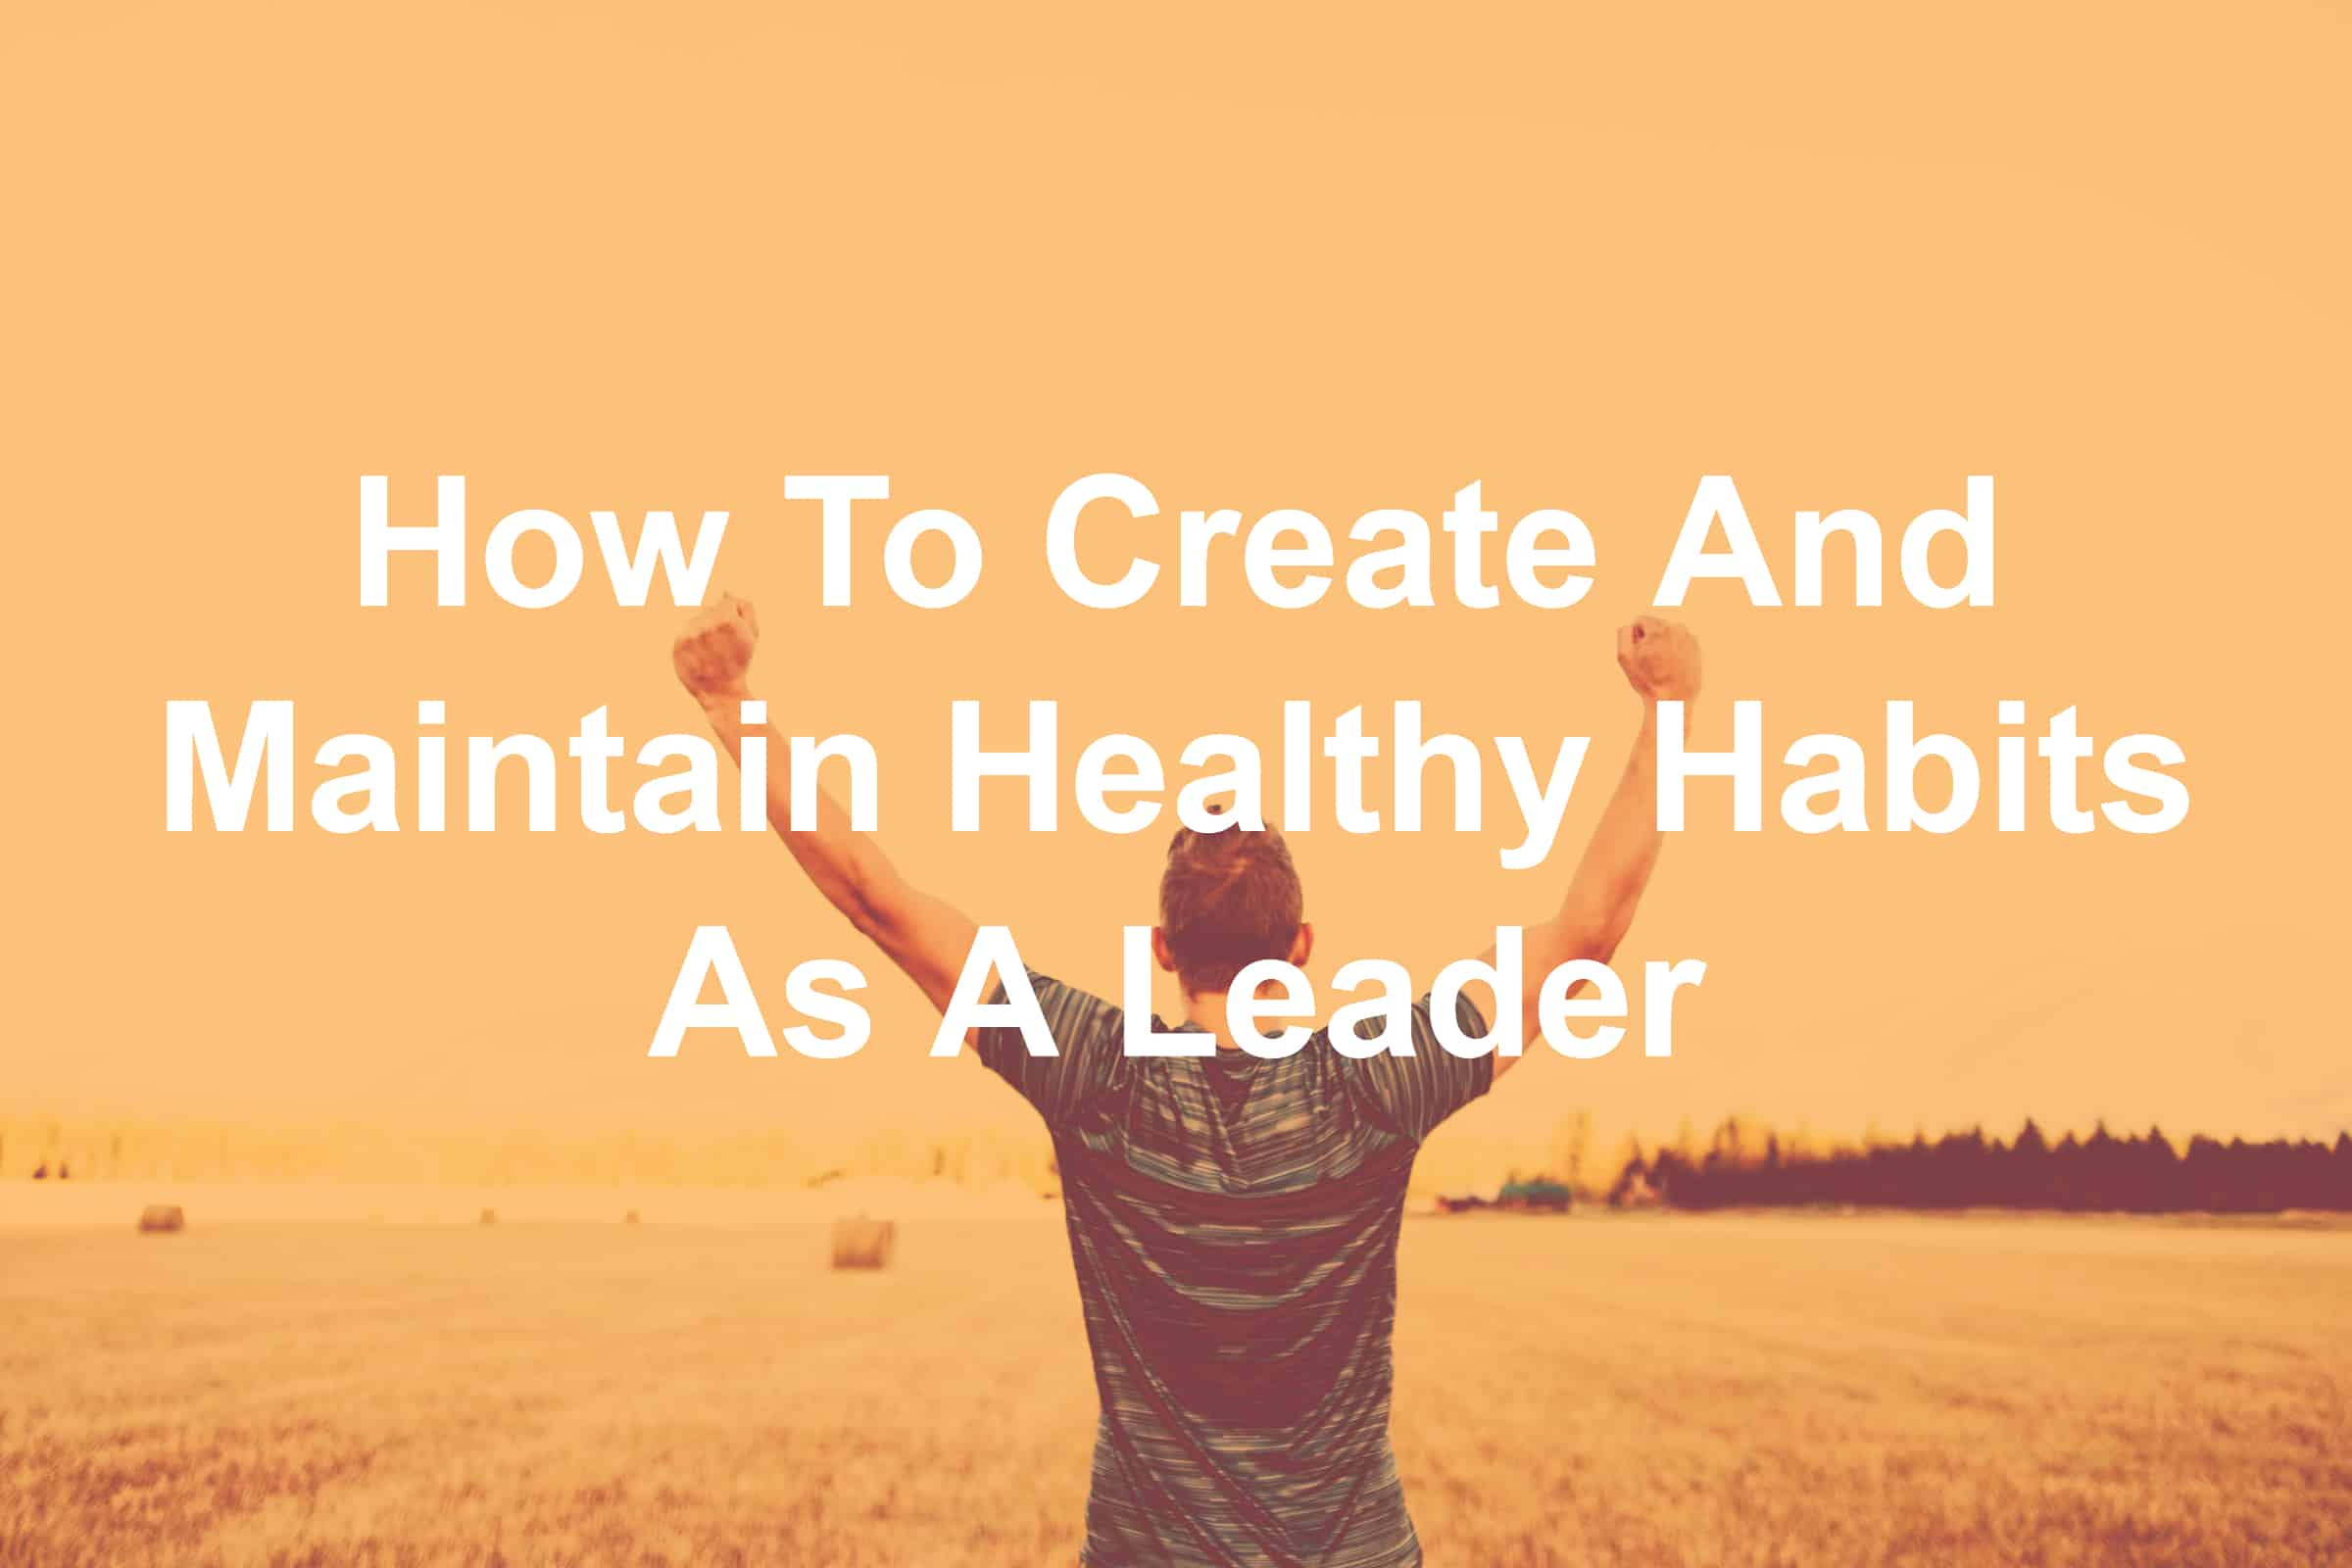 Creating and maintaining healthy habits is crucial to a healthy leader